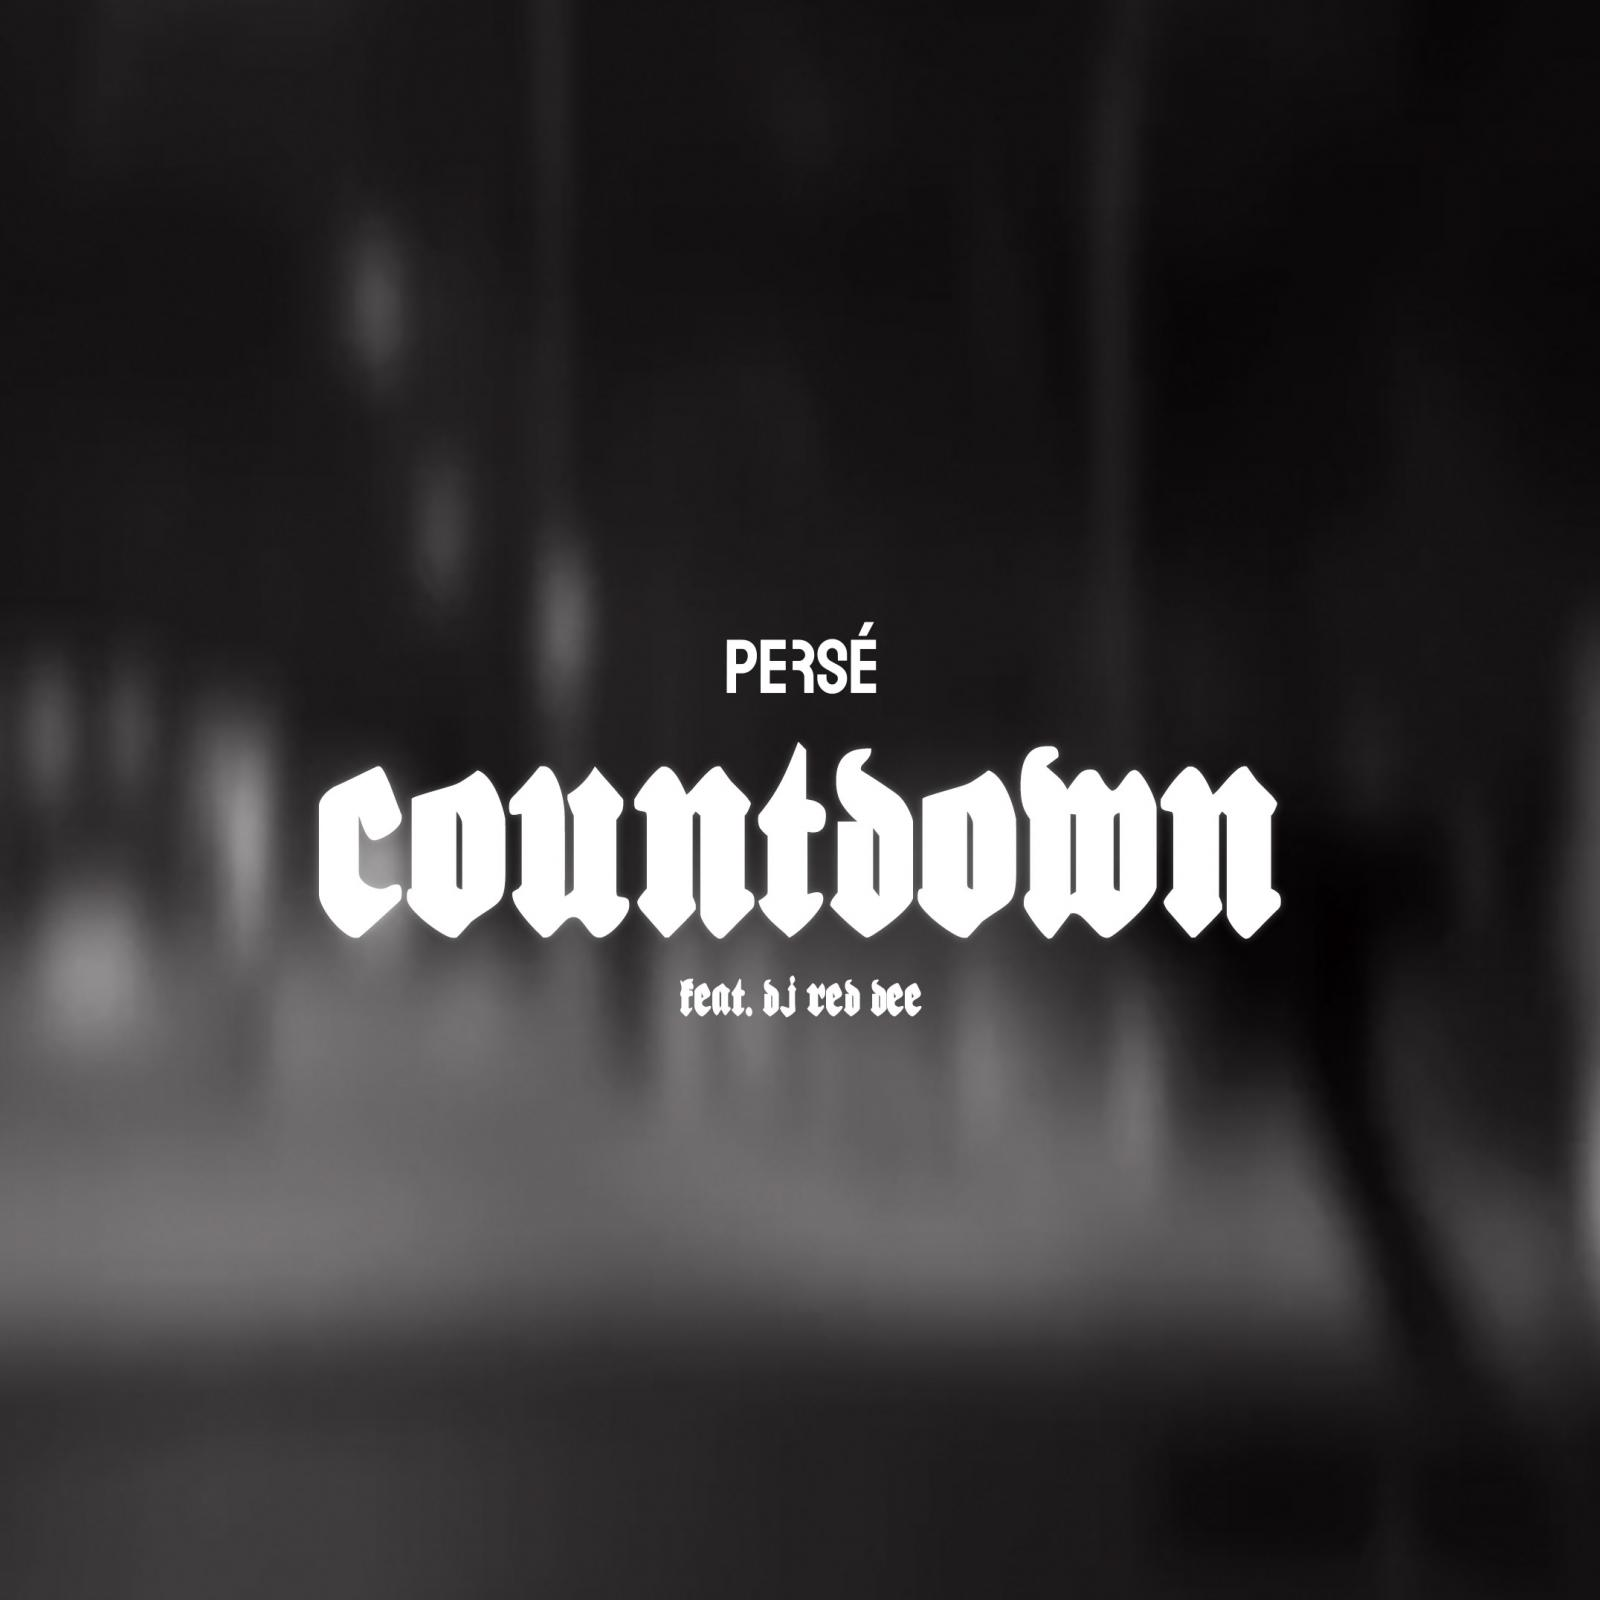 Upcoming: Persé - Countdown Feat. DJ Red DEE [Video]